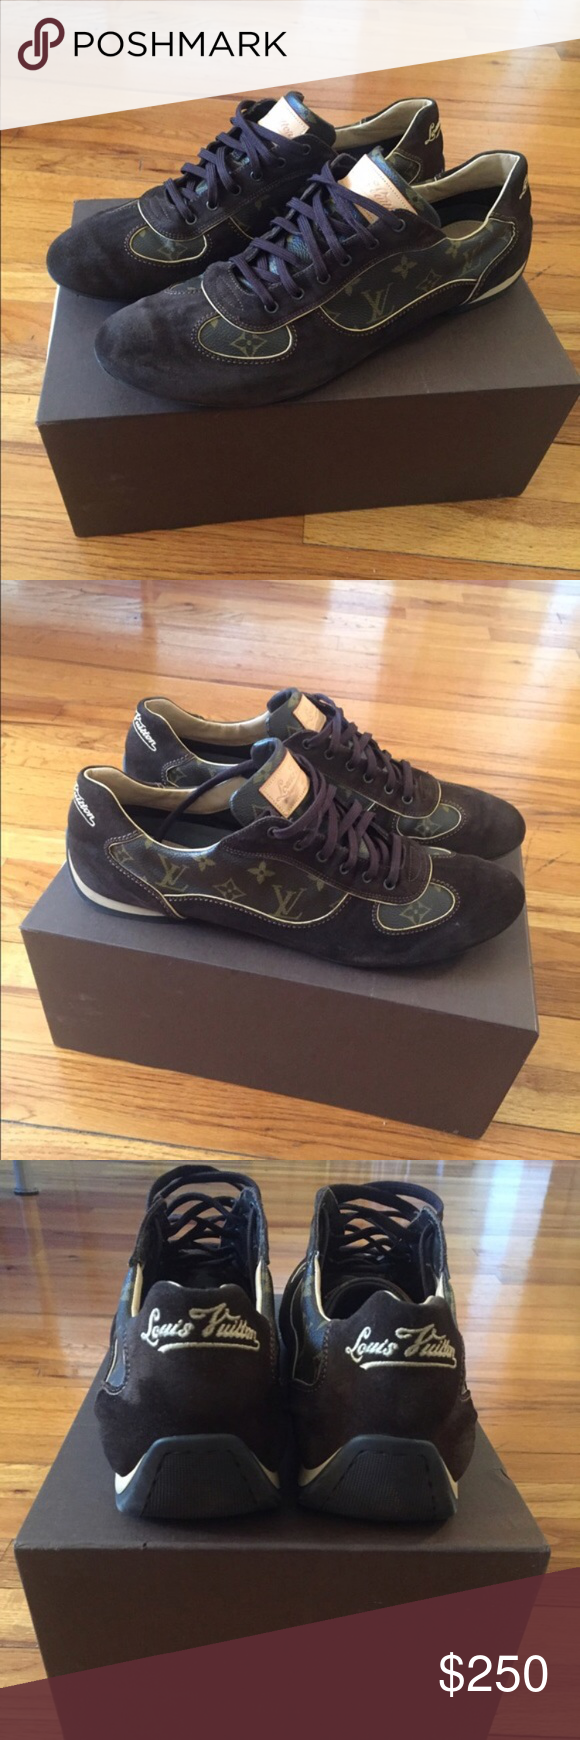 Authentic Louis Vuitton shoes Well kept, gently worn men's ...